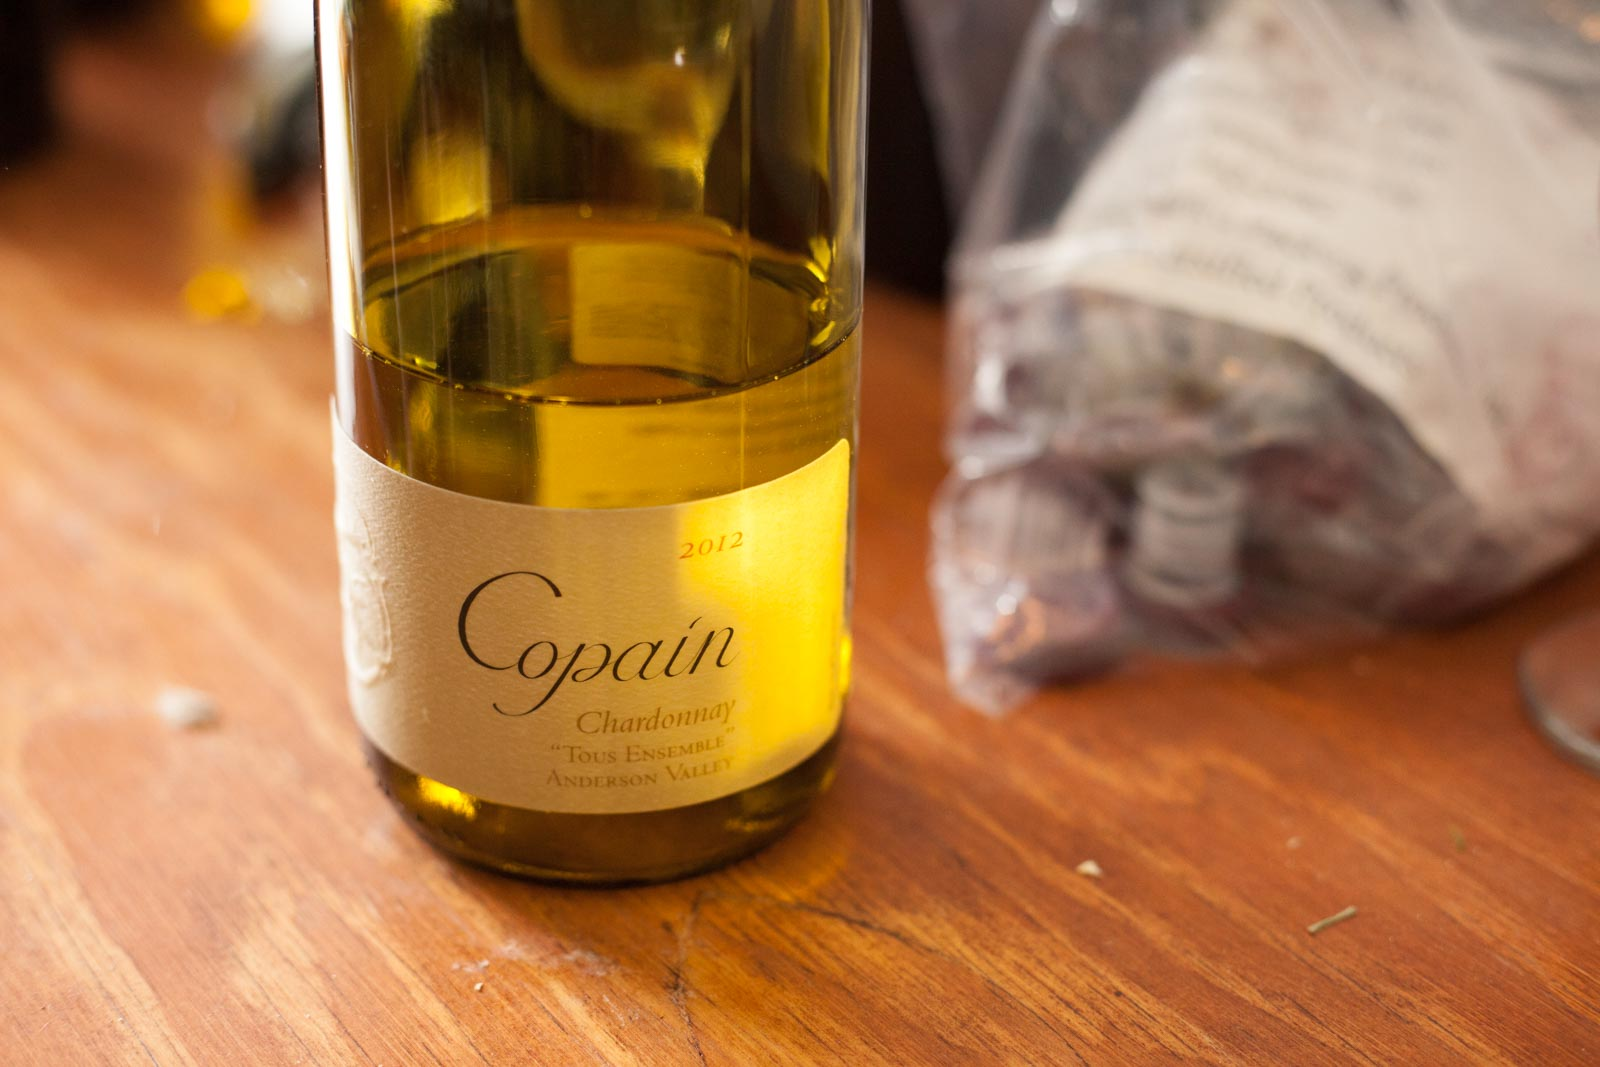 One of the many times a bottle of Copain appeared before me: at the hedonistic bacchanal of the Aspen Food & Wine Classic in 2014. ©Kevin Day / Opening a Bottle